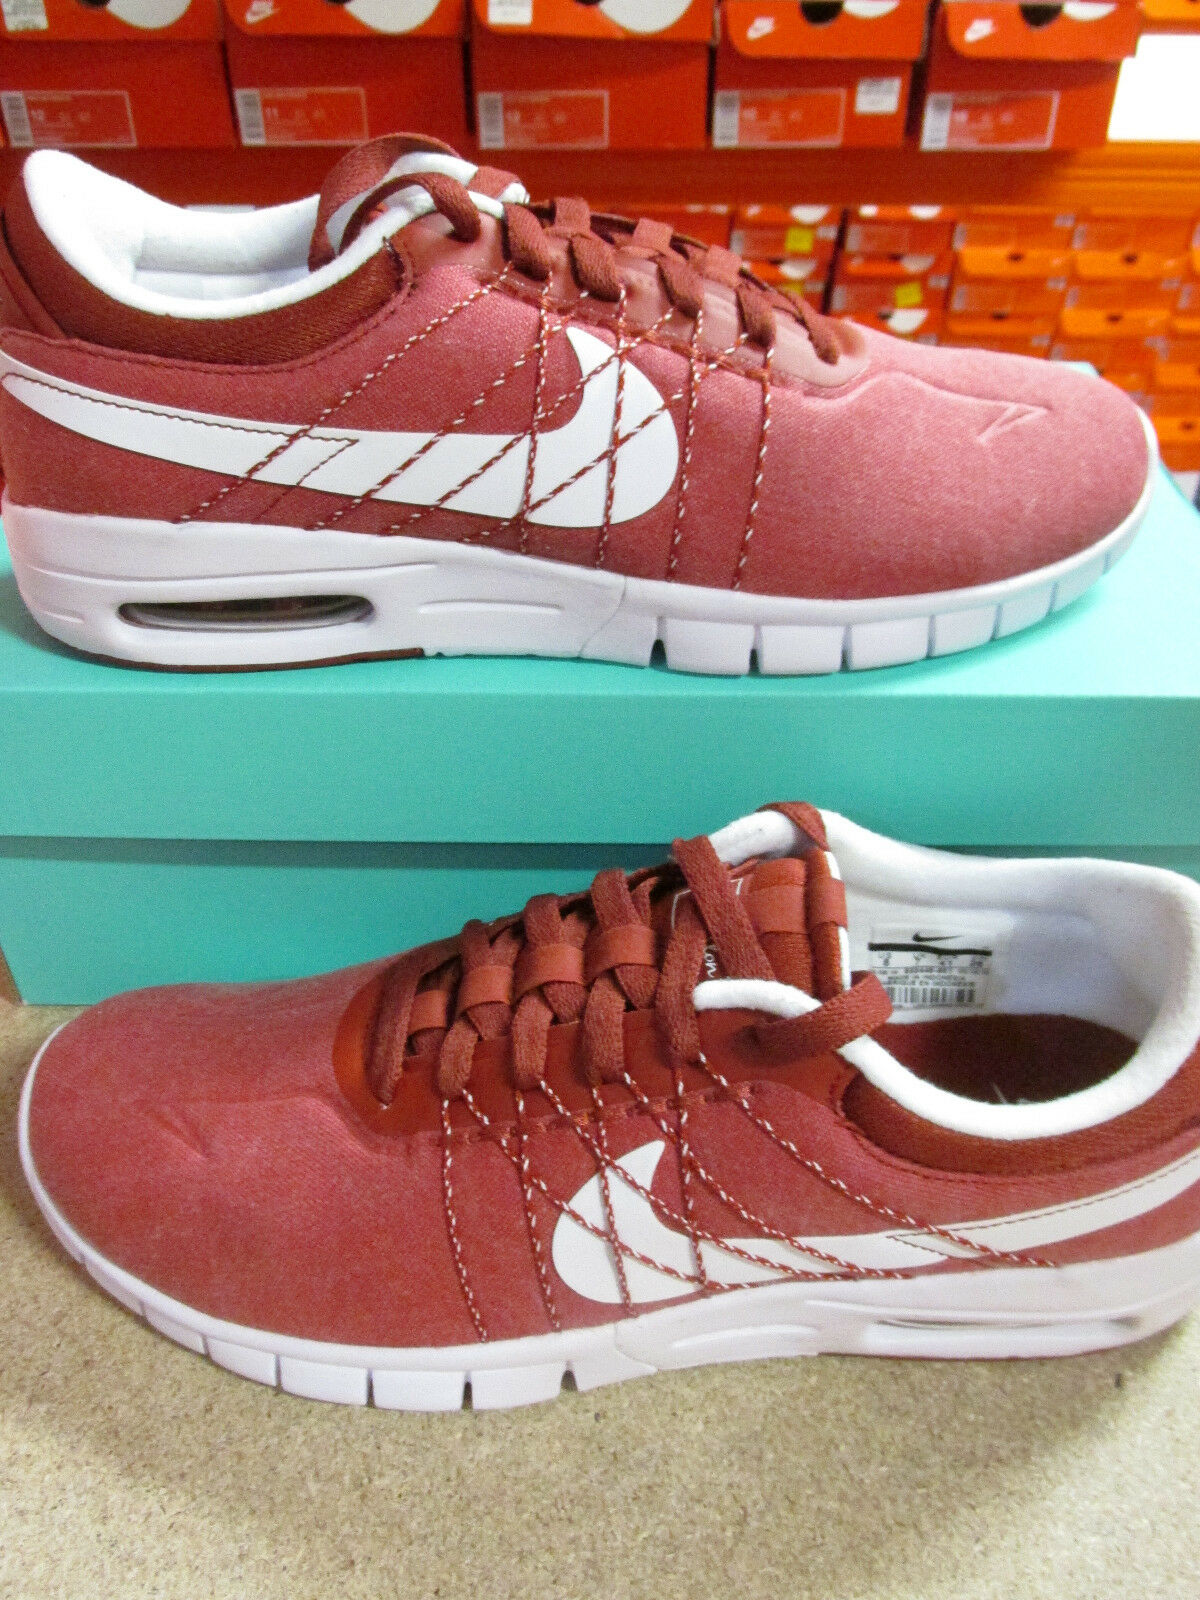 Nike Sb Koston Max Baskets Hommes 833446 601 Baskets